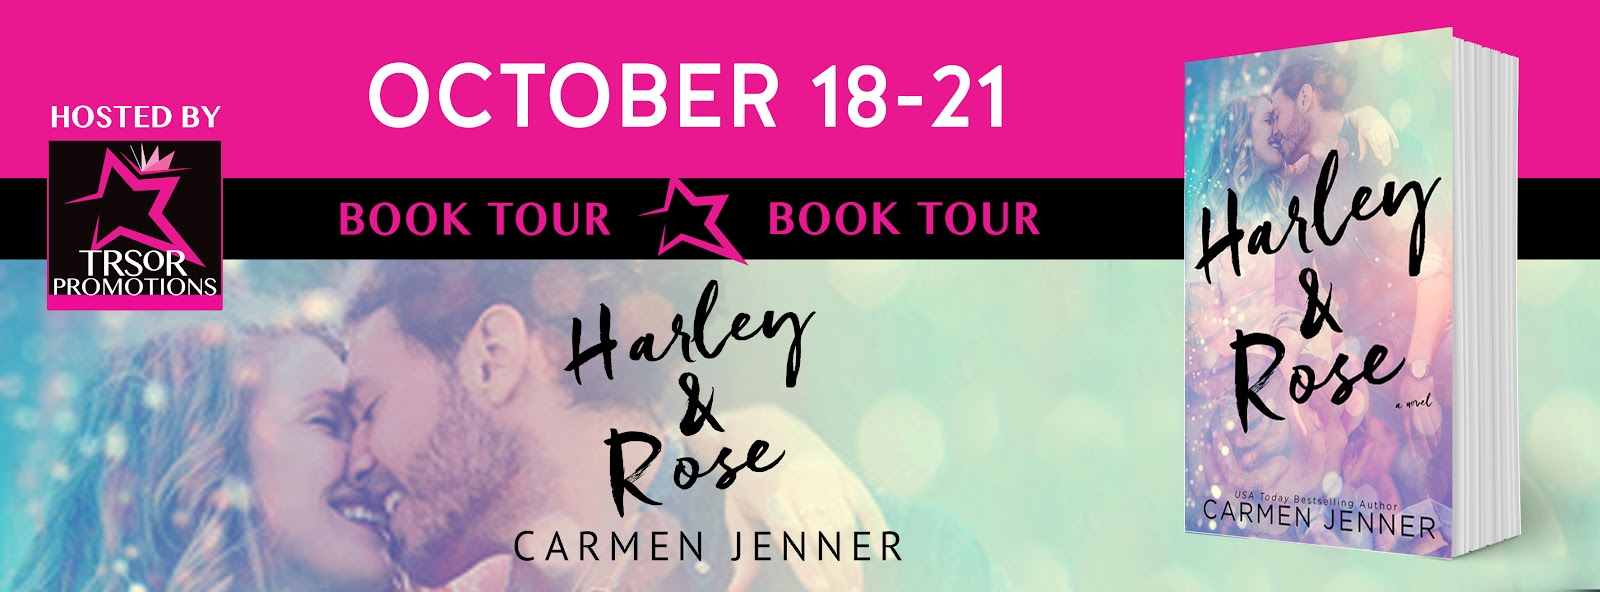 HARLEY_ROSE_BOOK_TOUR.jpg